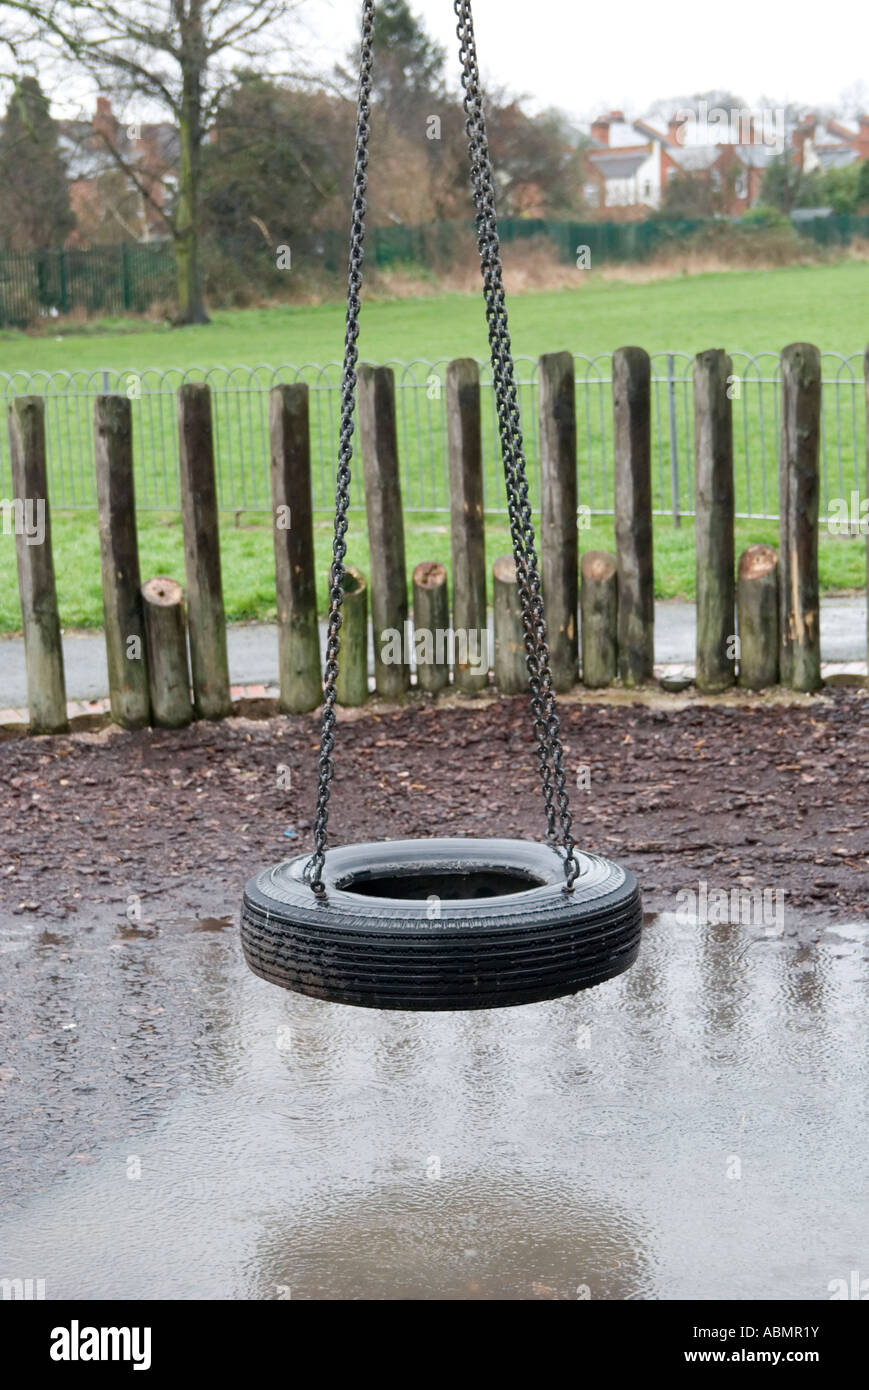 A Car Tyre Swing In A Playground In A Park In A Rainy Day Stock Photo Alamy